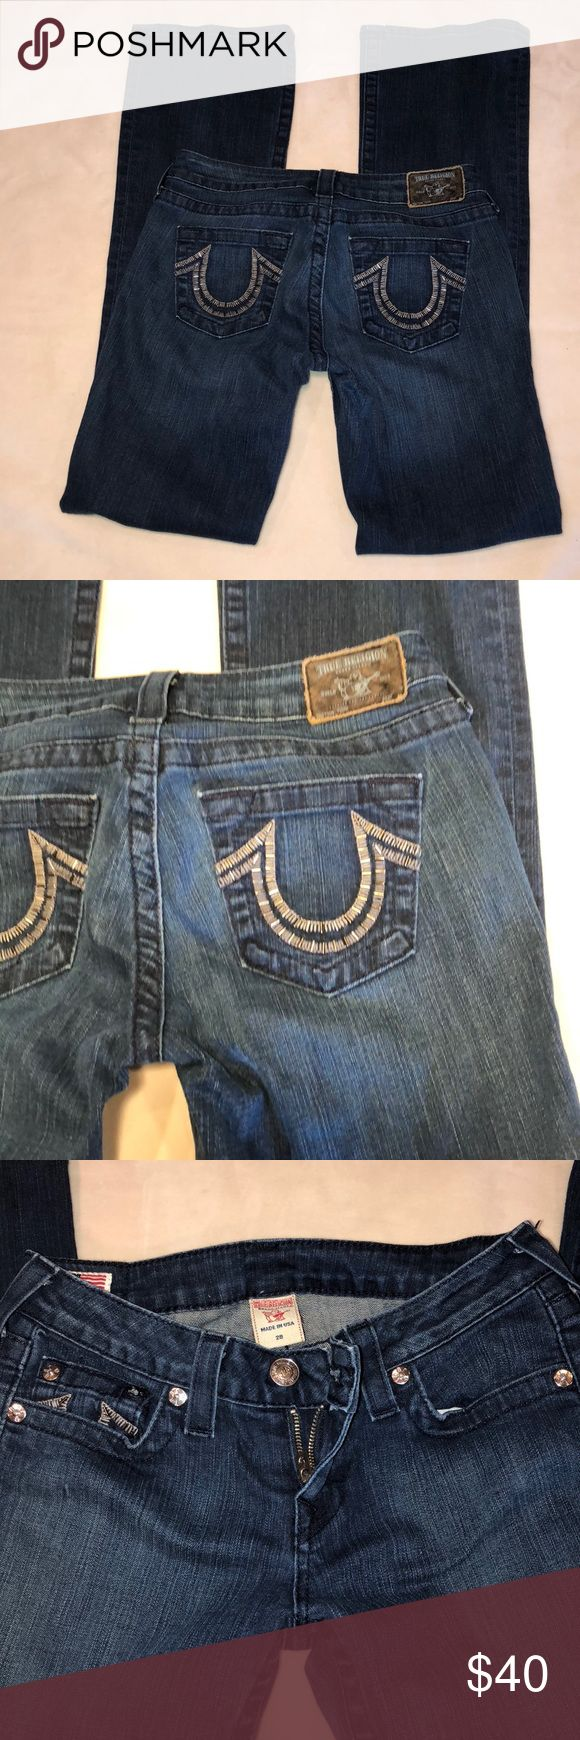 "TRUE RELIGION women Jeans size 28 TRUE RELIGION WOMEN JEANS Size 28  ⚡️Boot cut  ⚡️Metal decoration on logos  ⚡️94% Cotton 5%polyester 1%spandex  🔹measurements laying flat approximately  ⚡️Waist 14"" ⚡️rise7.5"" ⚡️hips 19"" ⚡️Inseam 33"" 🔹Excelente condition. No stain no rips True Religion Jeans Boot Cut"